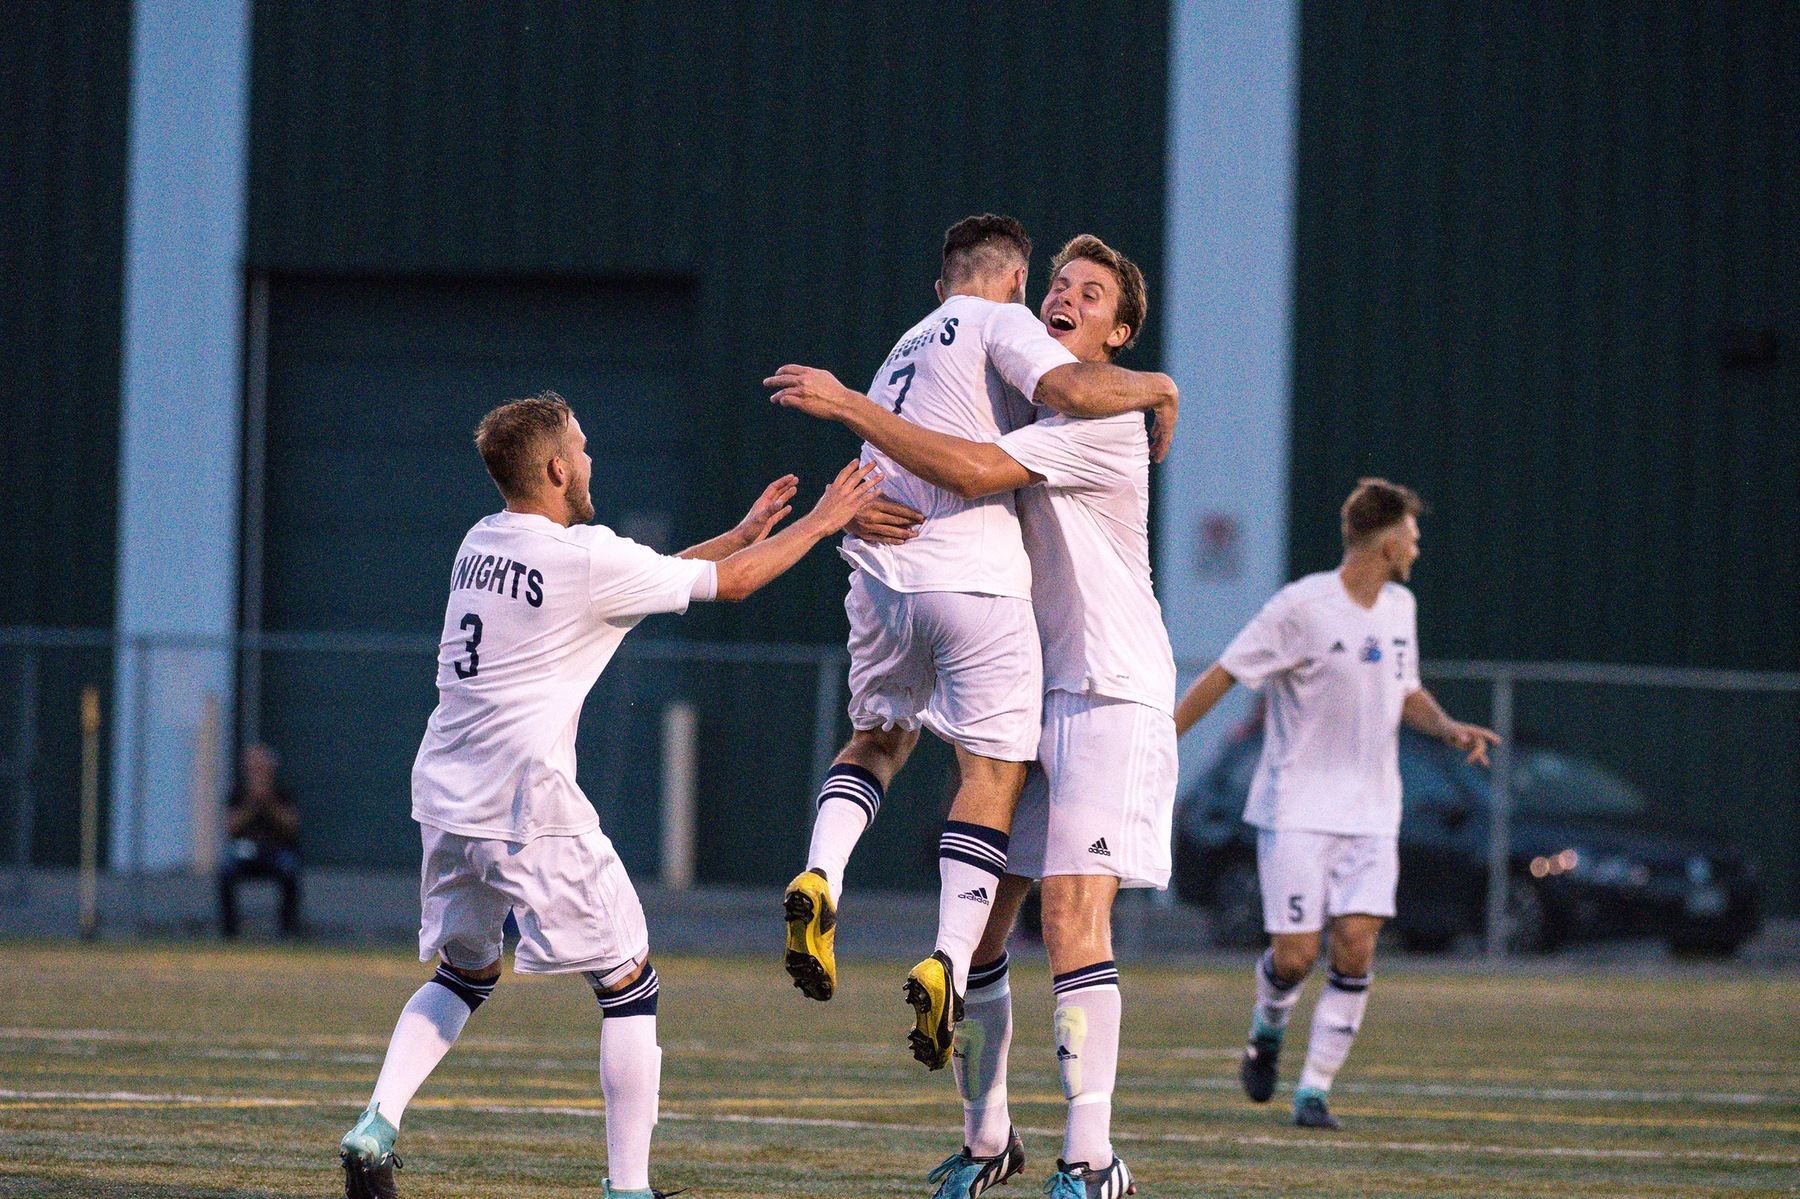 RECAP: Men's Soccer dominant in victory over No.5 ranked St. Clair